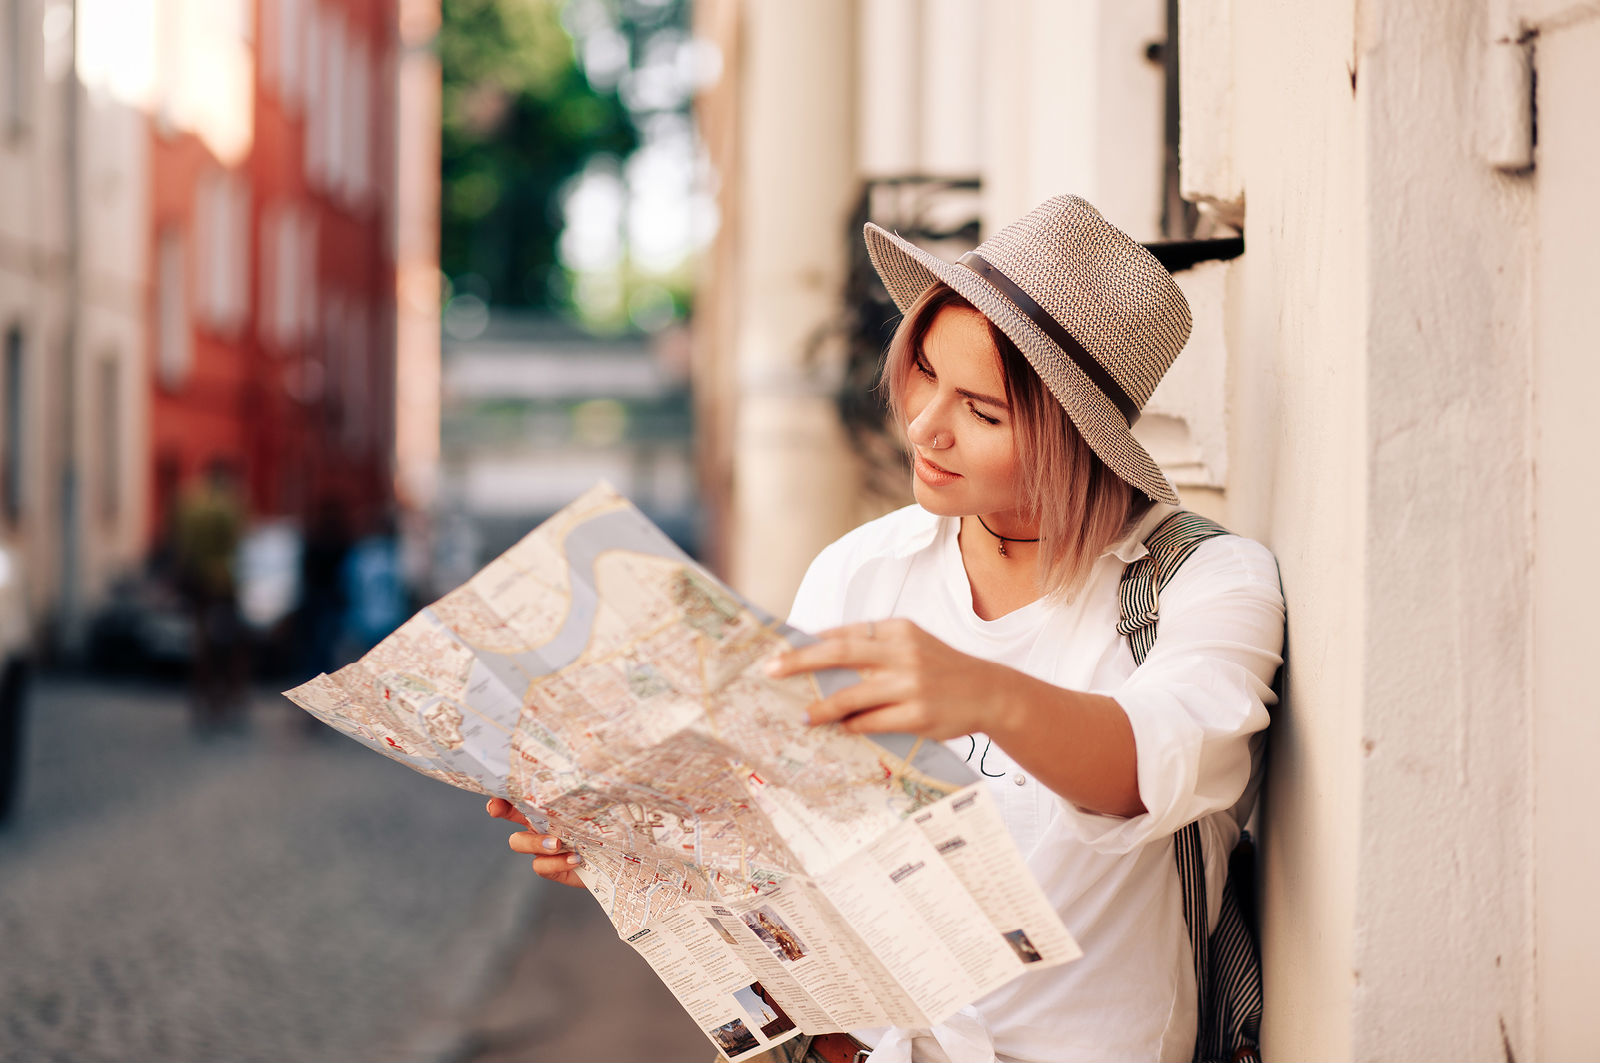 Four Travel Mistakes You Should Avoid For A Great Vacation